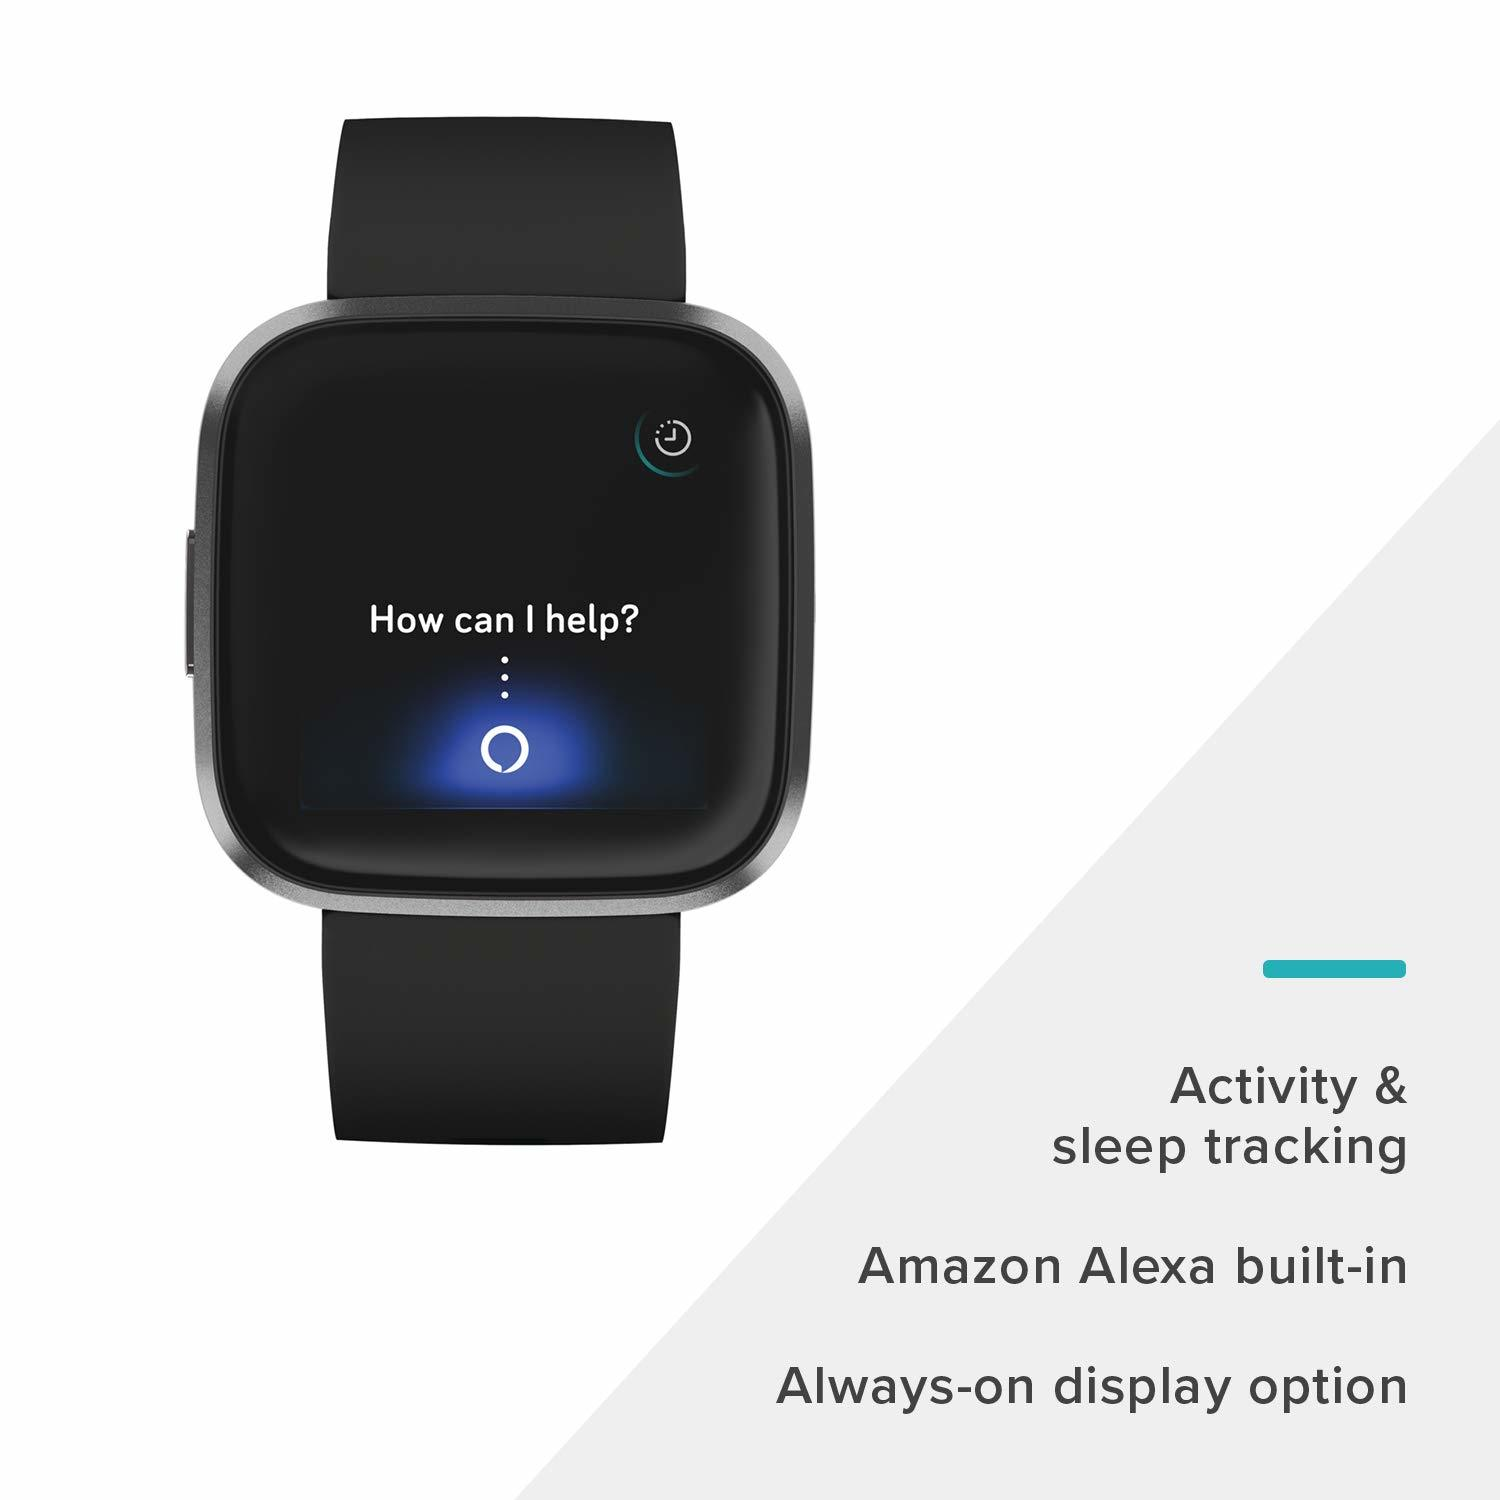 Fitbit Versa 2 Health & Fitness Smartwatch - Black/Carbon image